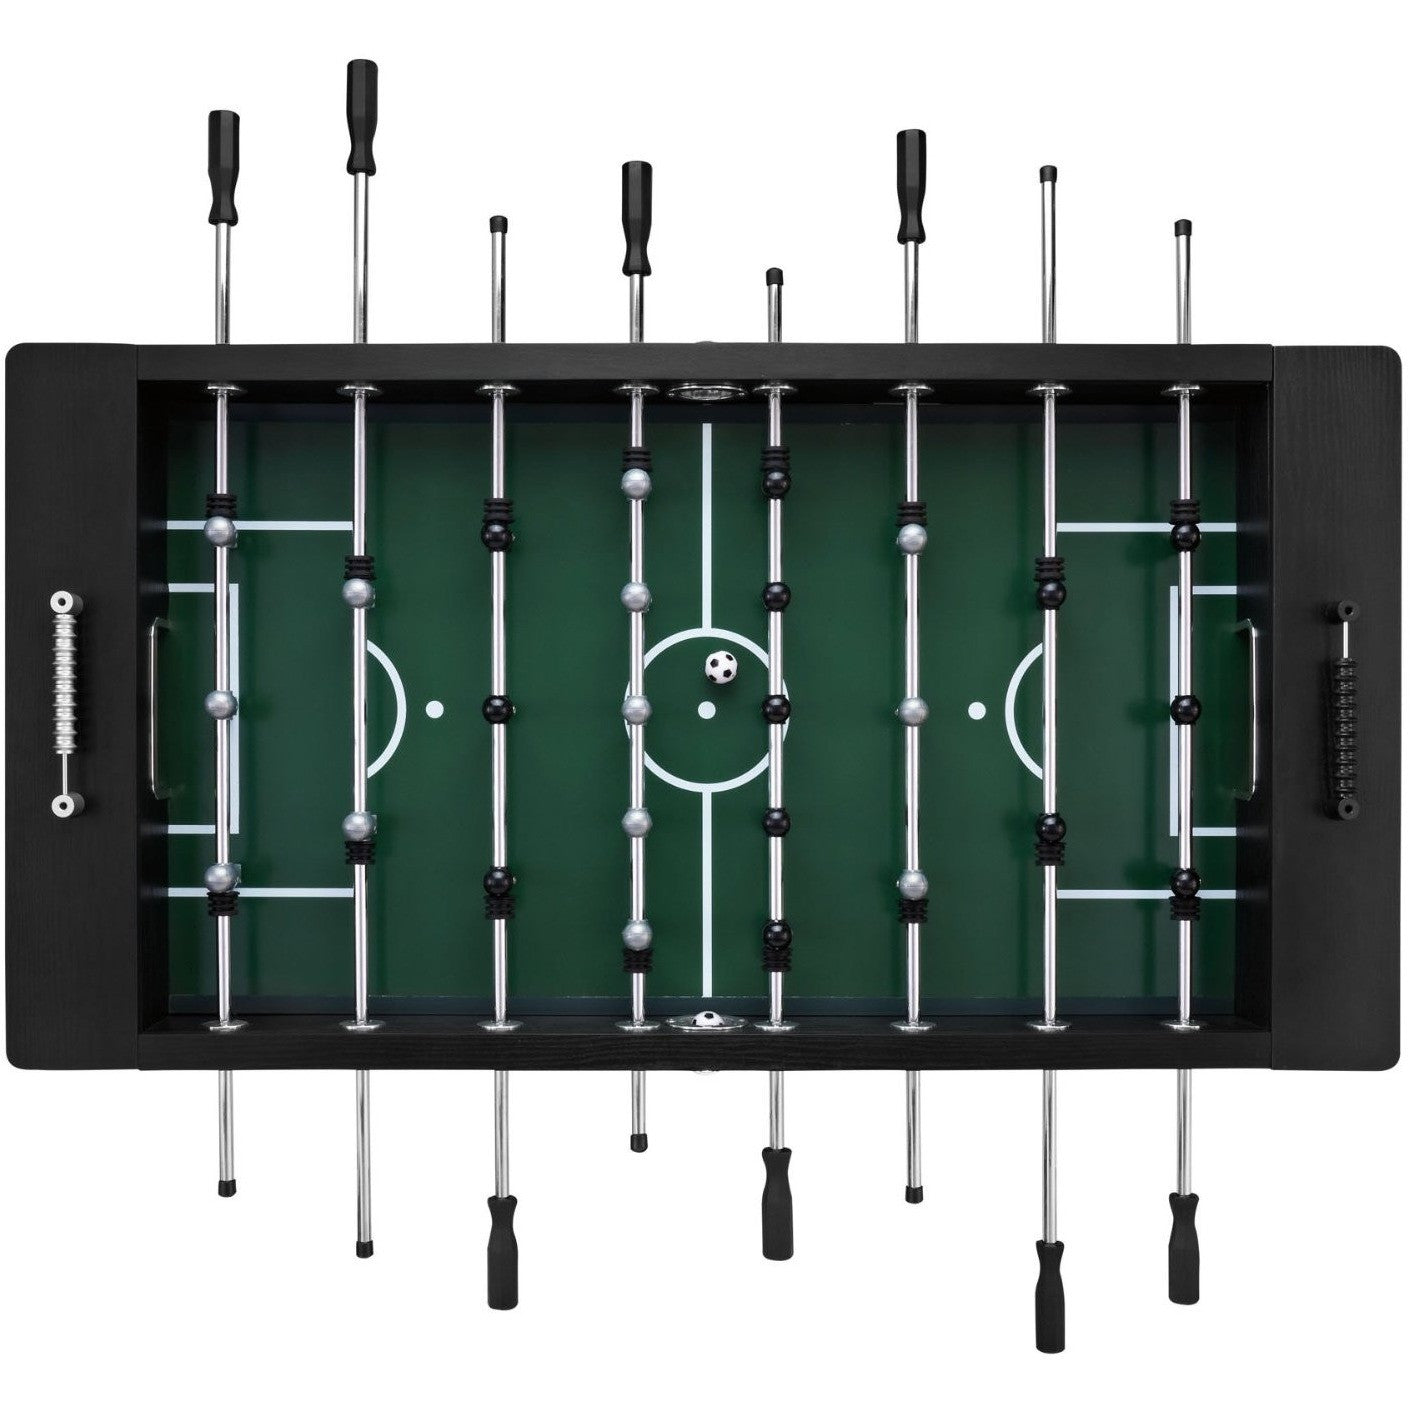 Viper Sheffield Foosball Table, Foosball Tables, GLD - Danny Vegh's